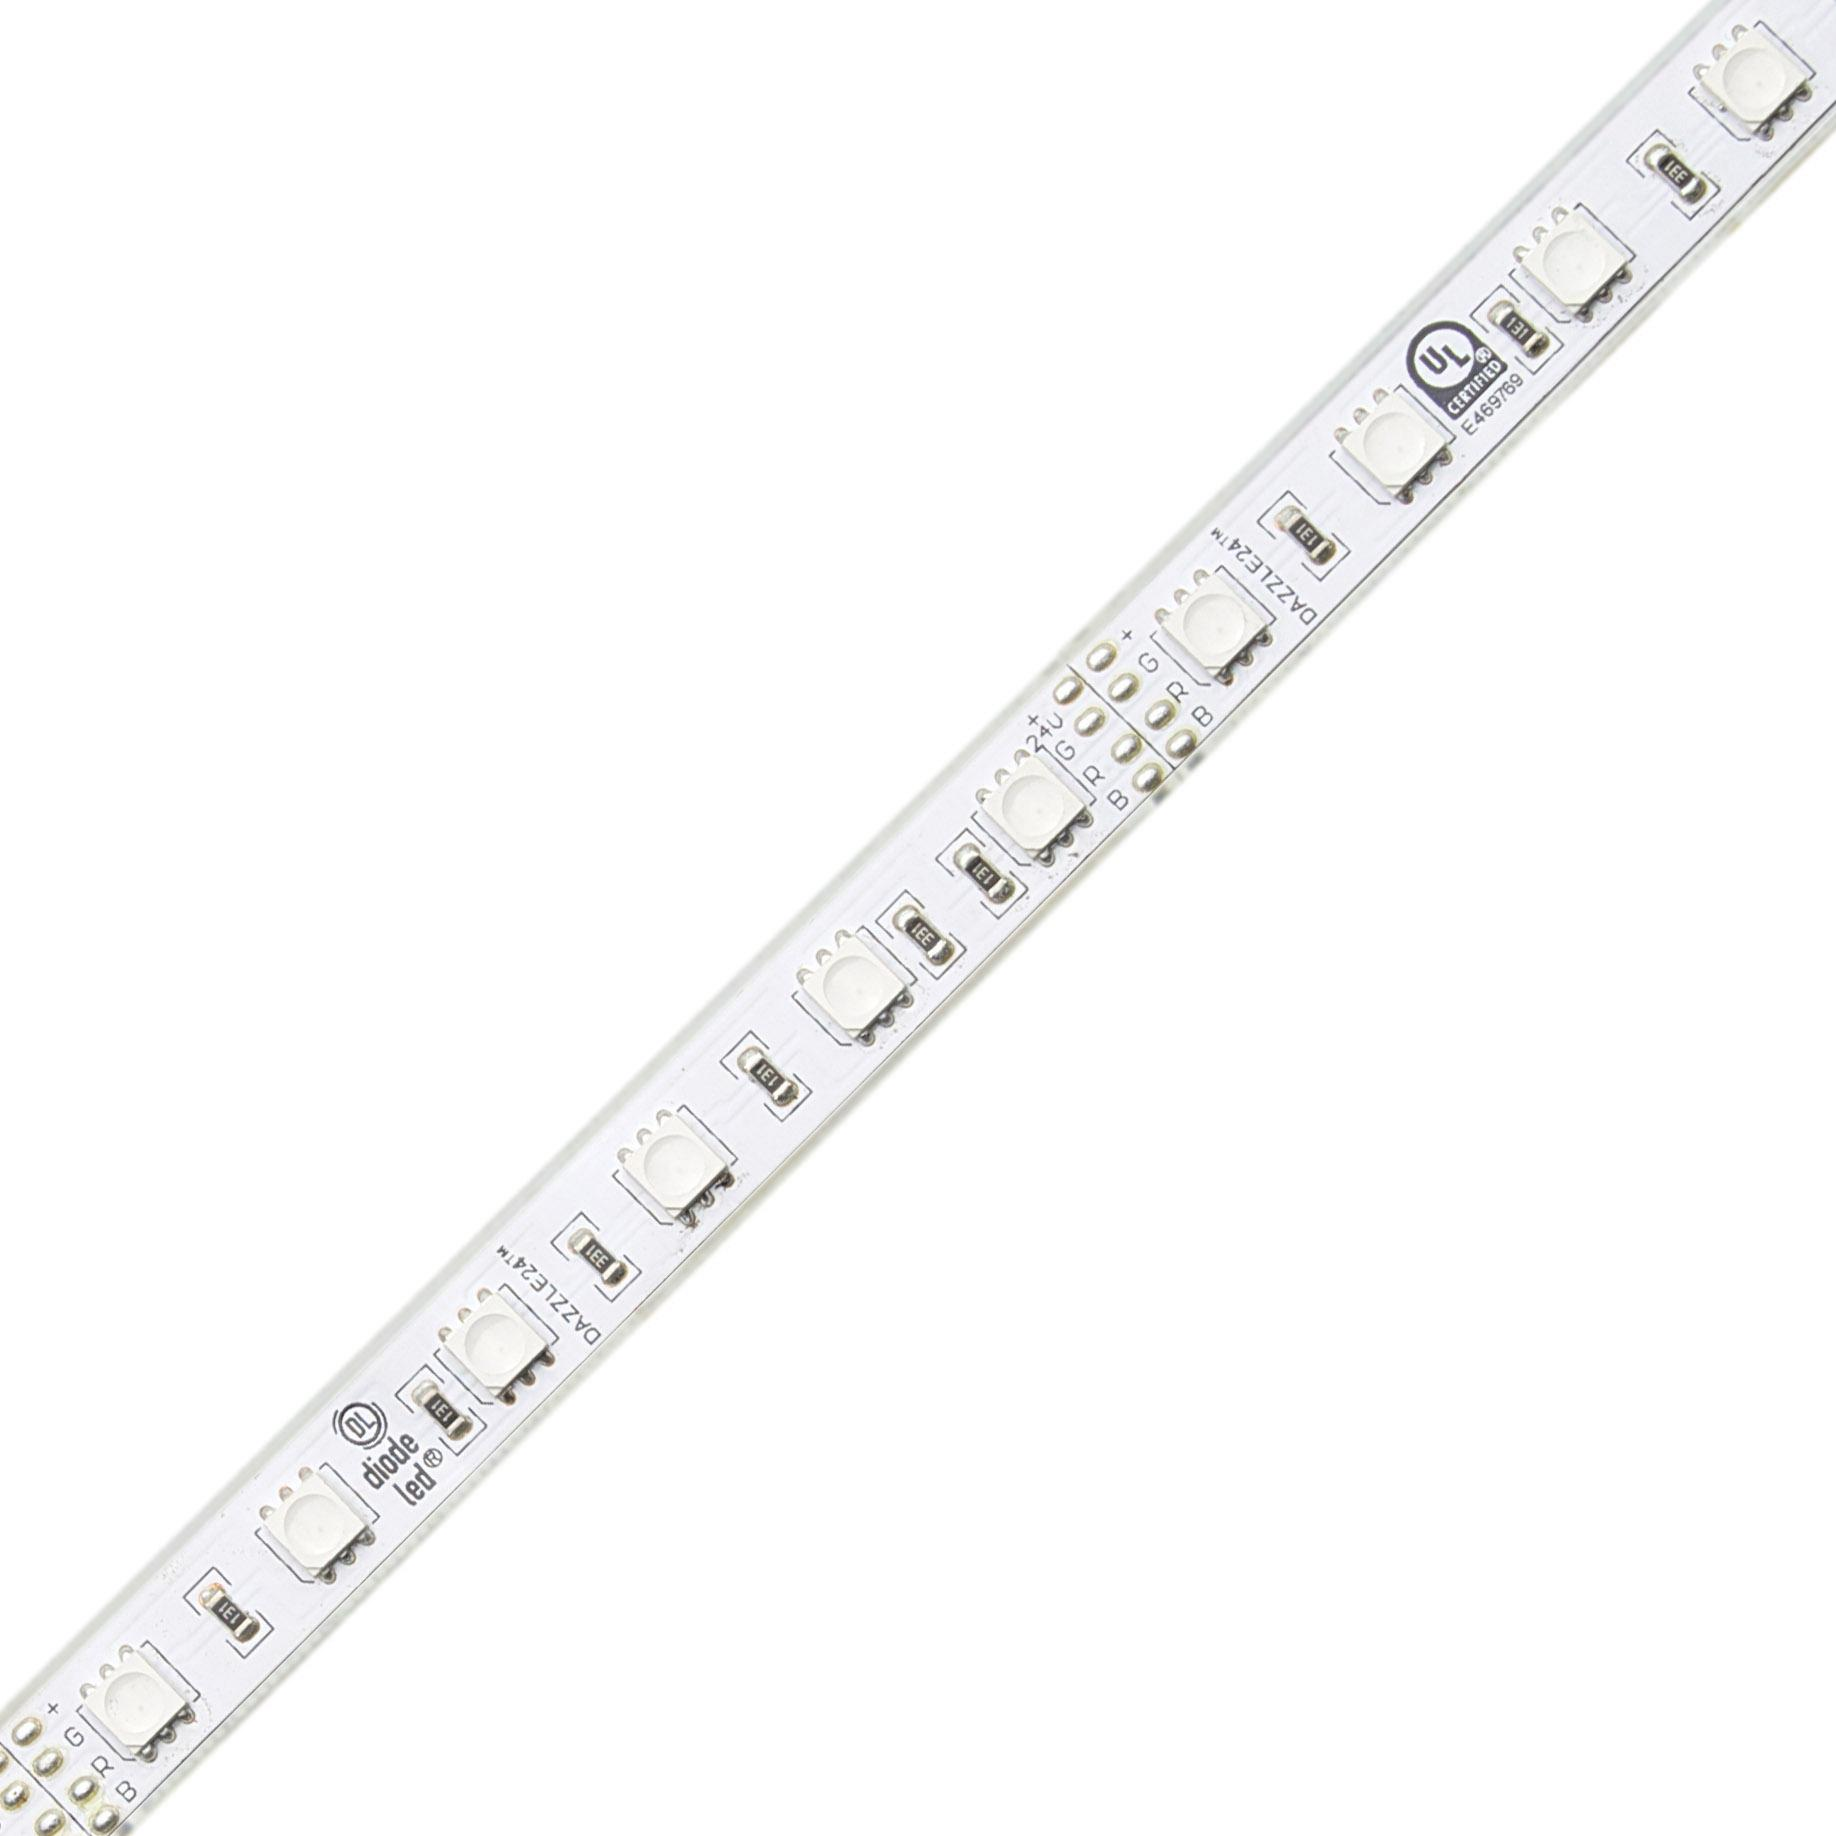 DAZZLE 24® 24V Wet Location RGB LED Strip Light